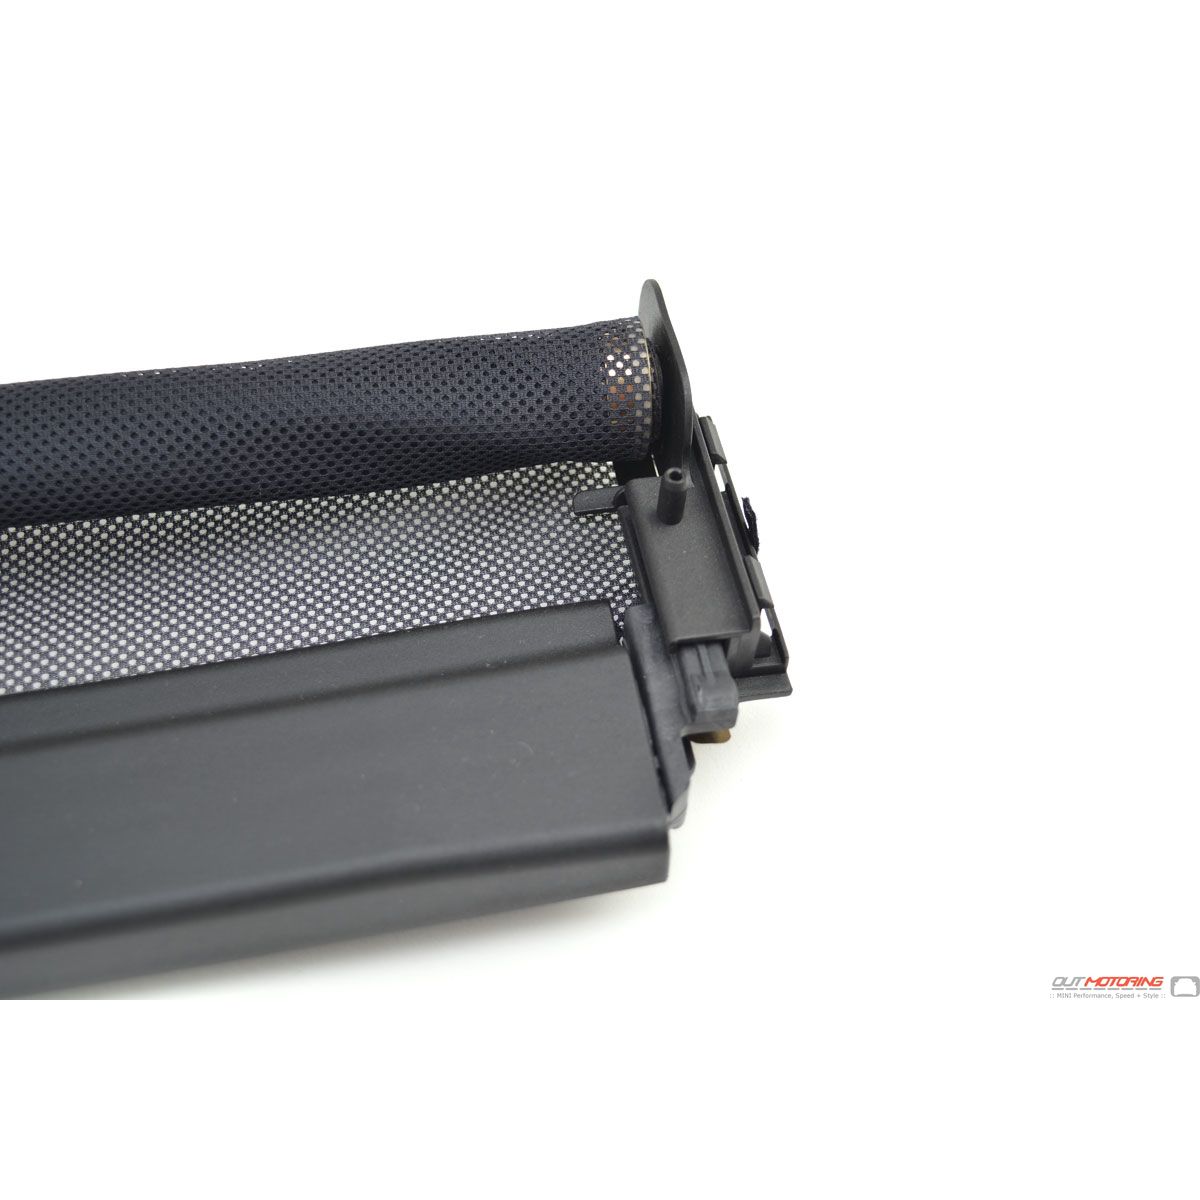 54102755849 MINI Cooper Replacement Sunroof Blind: Rear